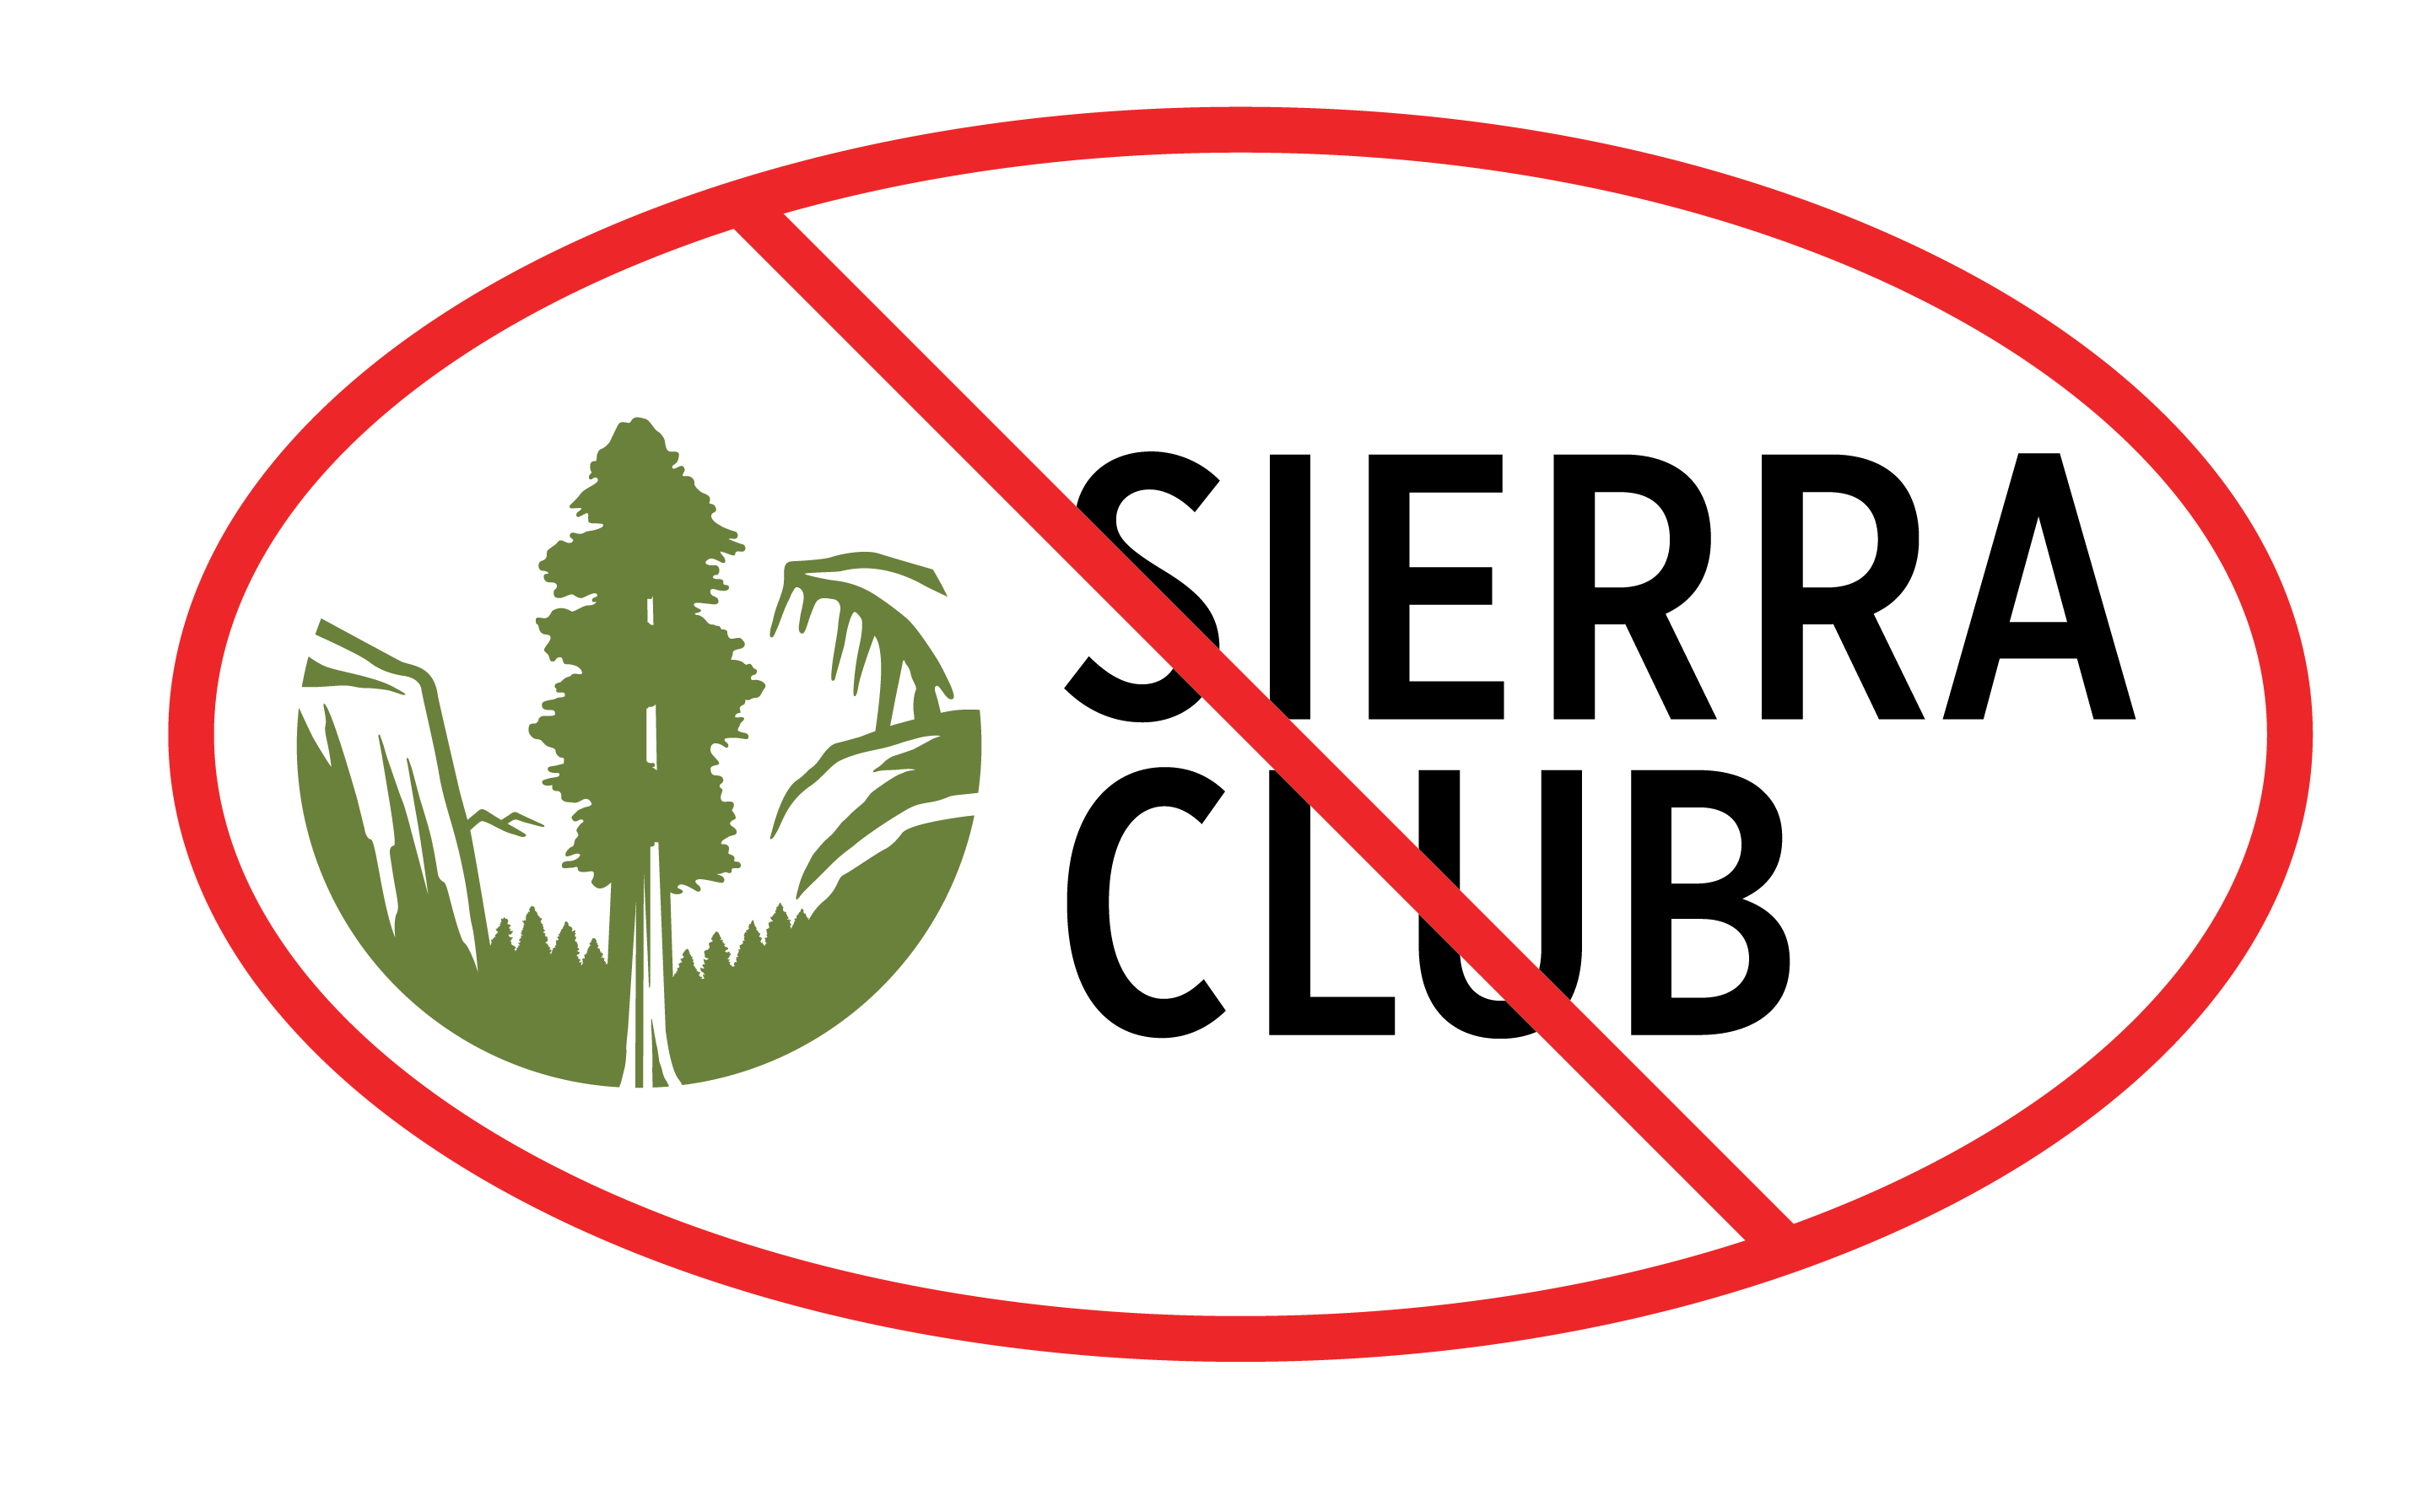 Sierra Club logo not permitted for use